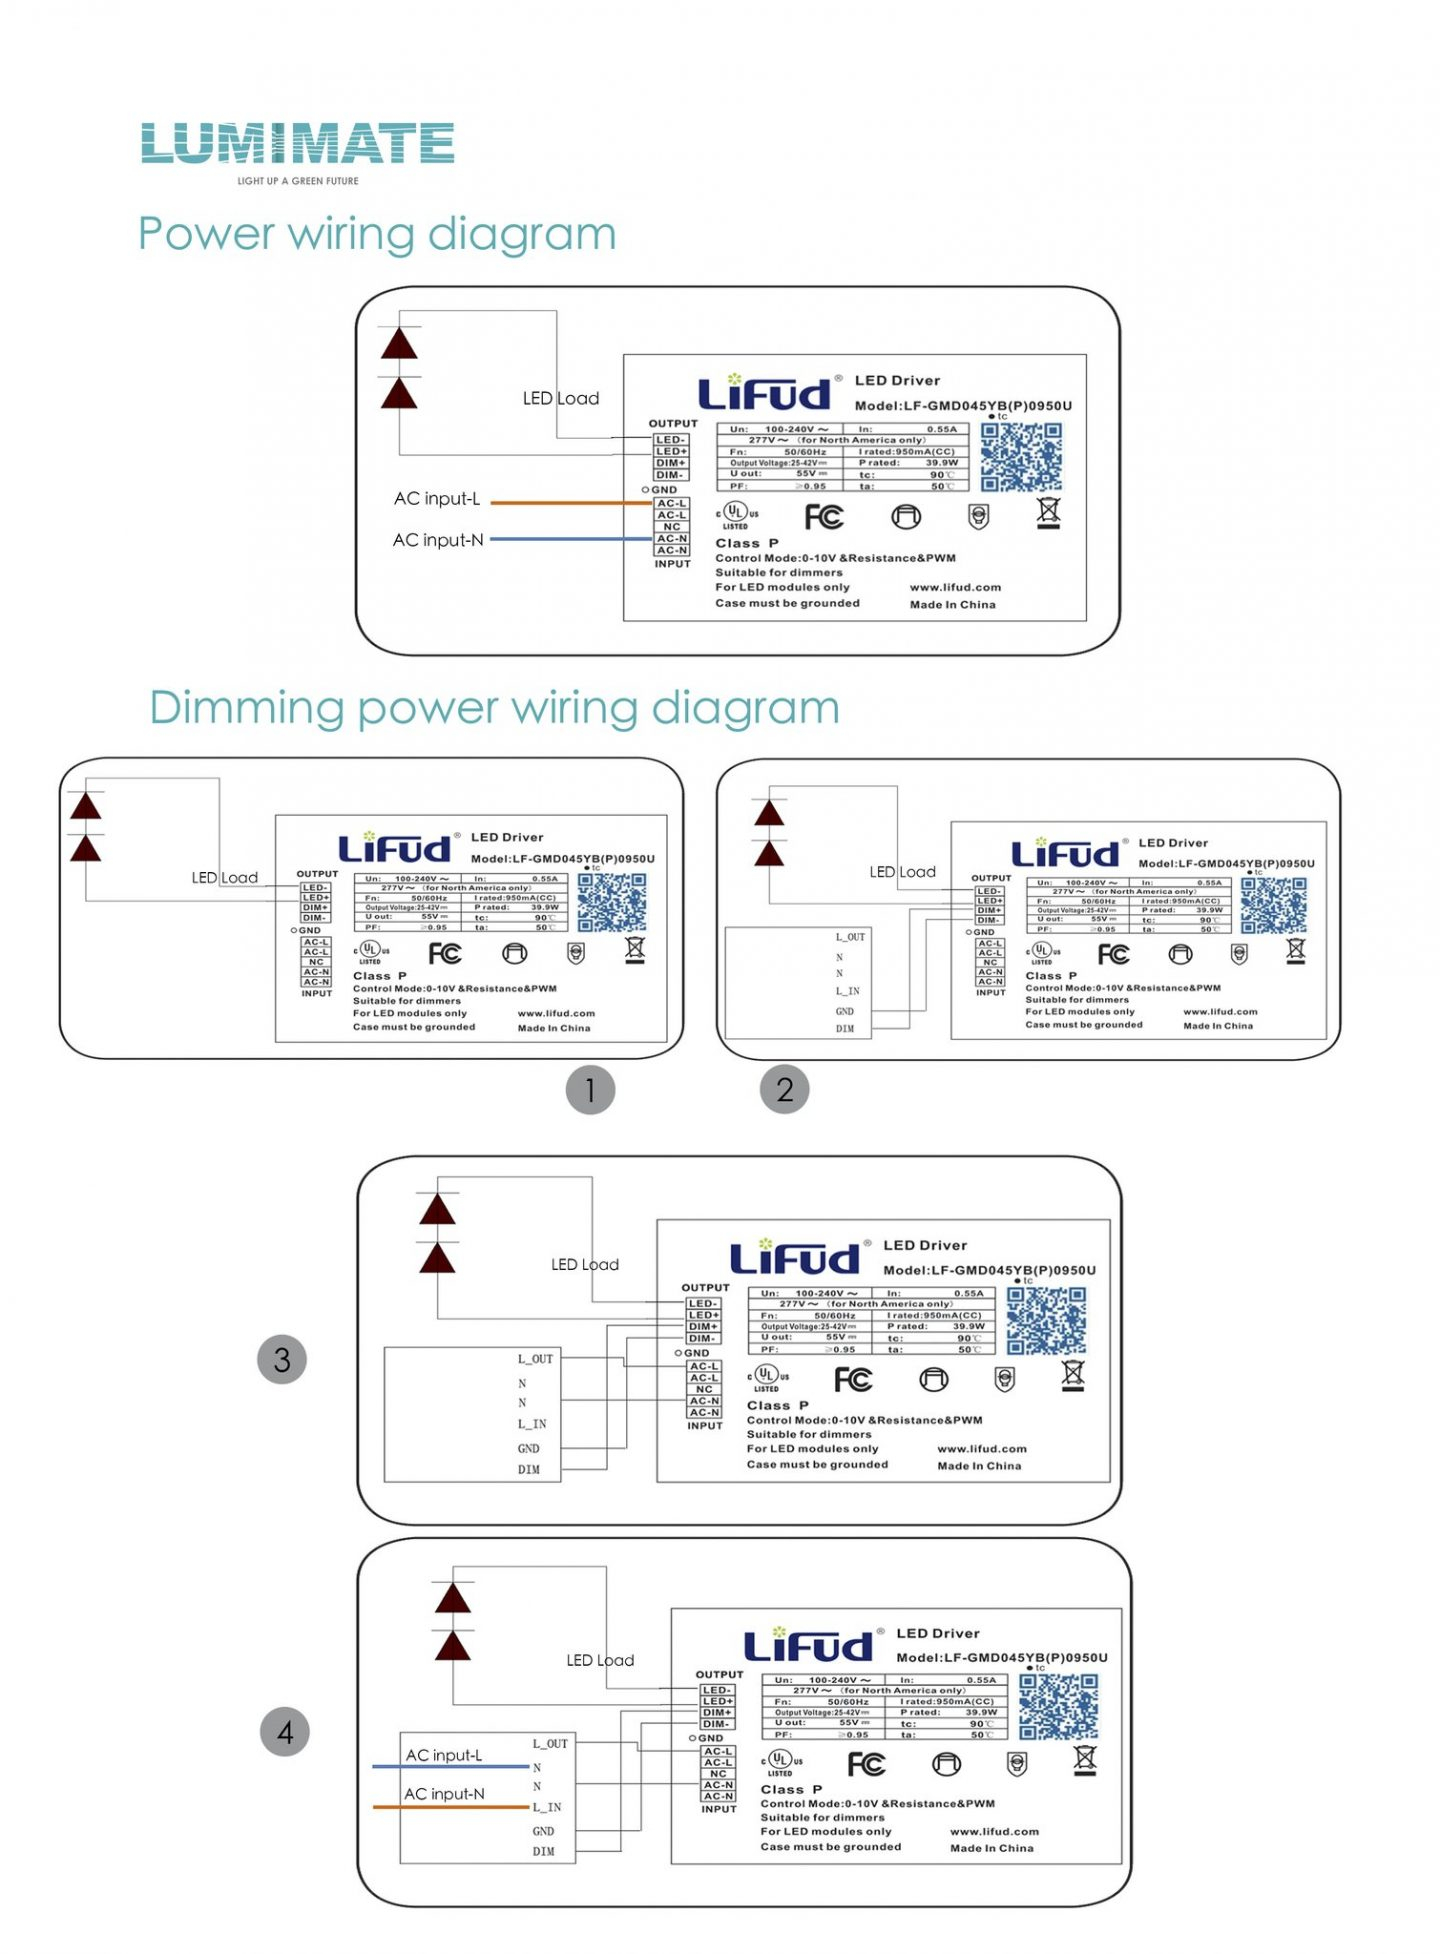 lifud led driver wiring diagram Download-Full Size of Wiring Diagram Viper 5x04 Wiring Diagram Ideas Dei Remote Start Directed 2-k